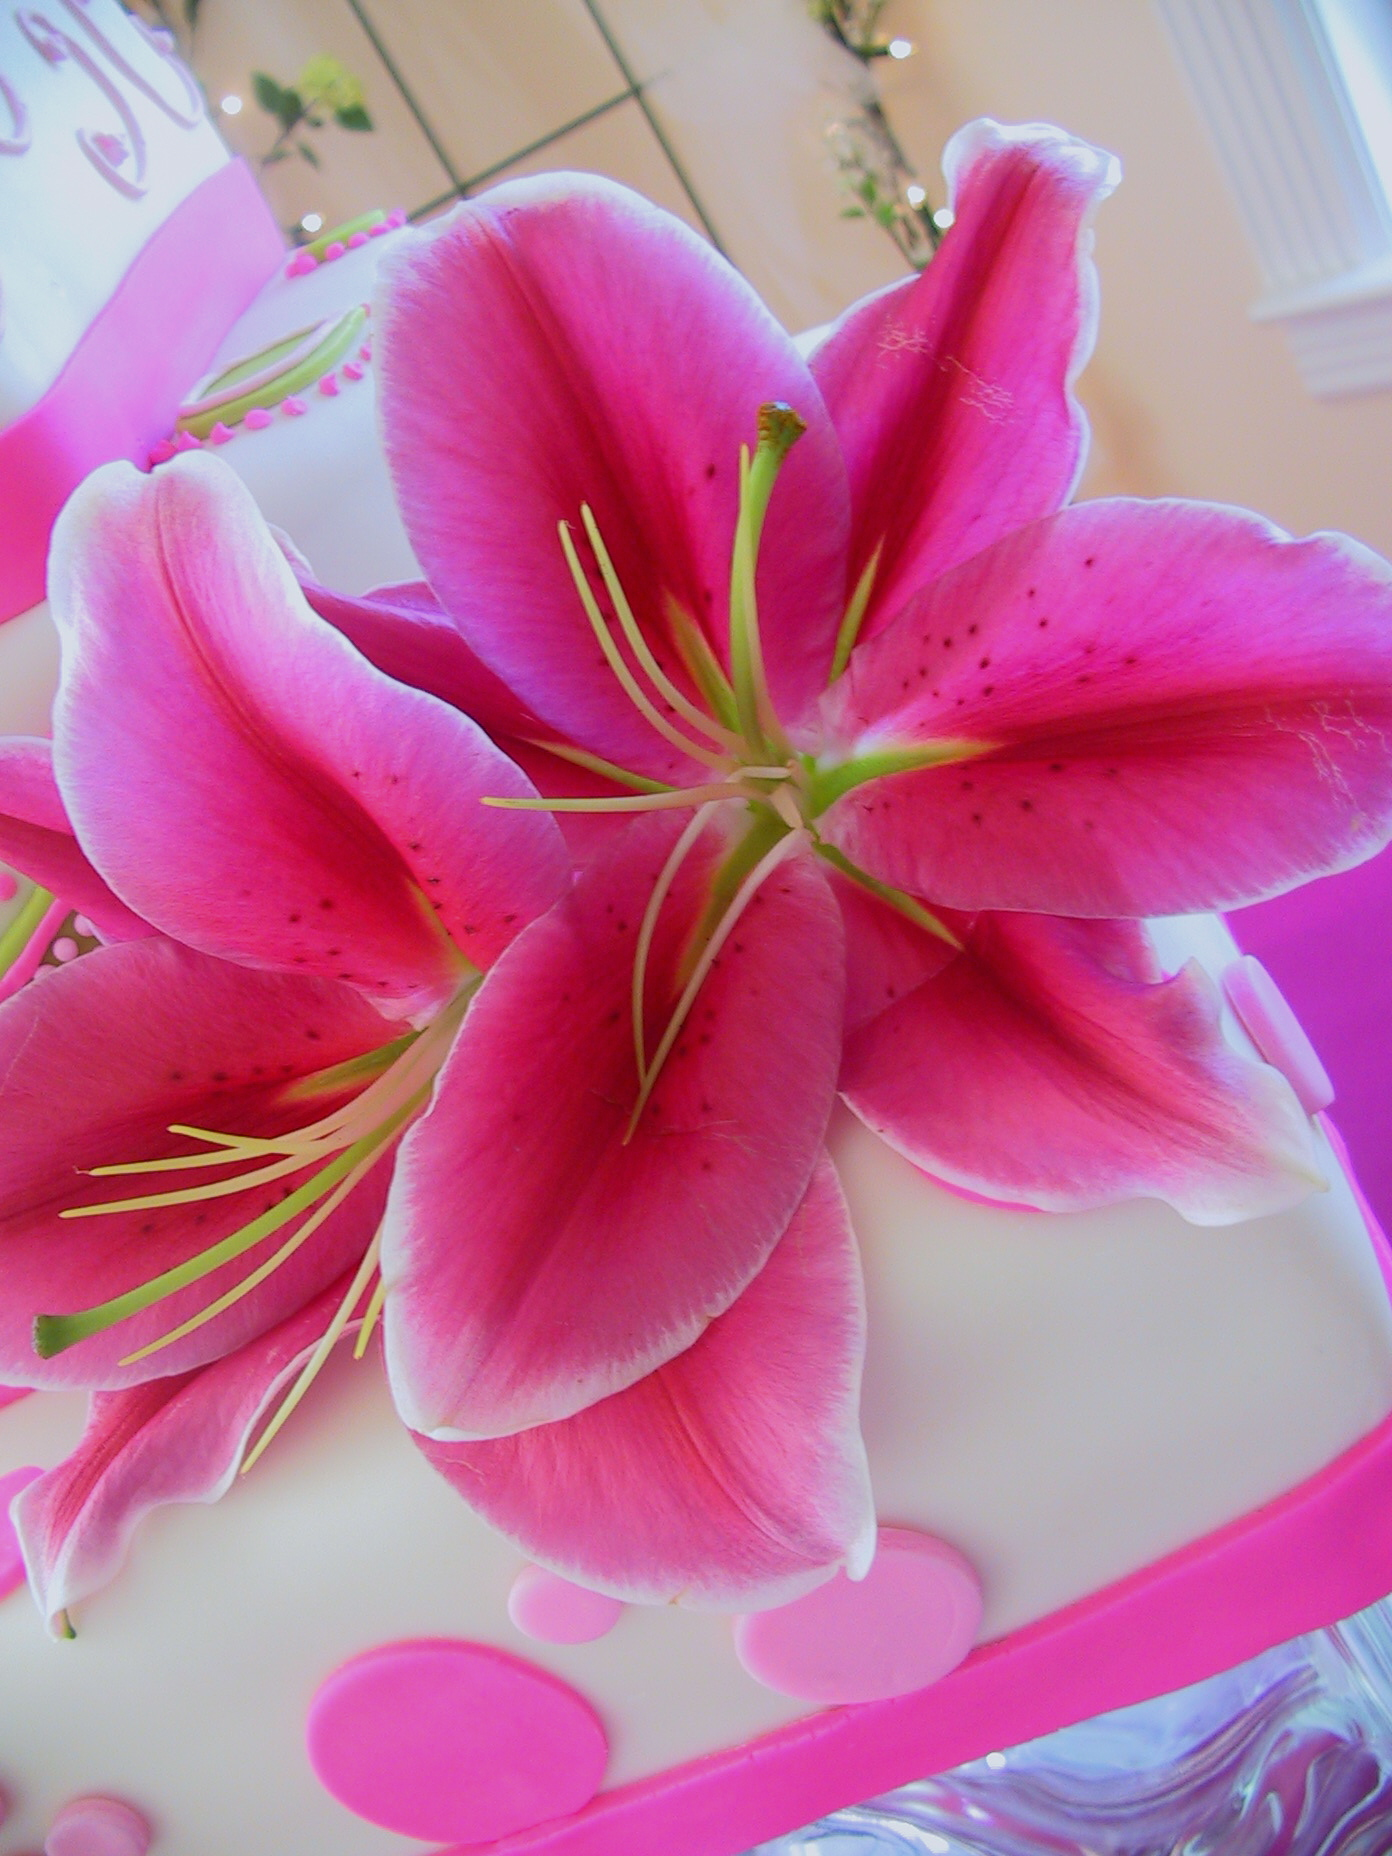 whimsical hot pink lillies